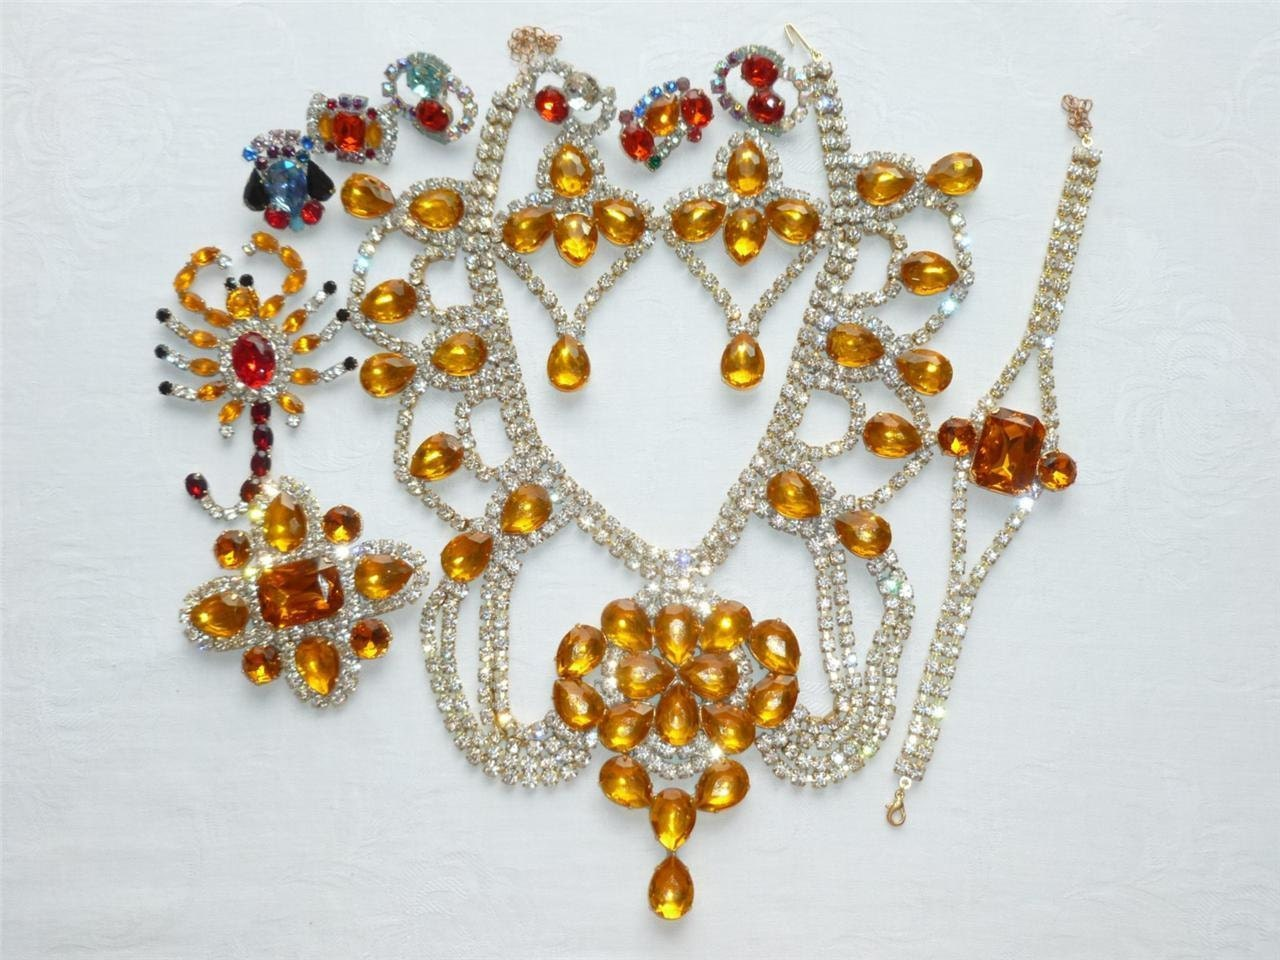 AMBER AMBIANCE is AMAZING.  This necklace set is gorgeous. Just in time for Valentine's Day! - GoldenCollectibles